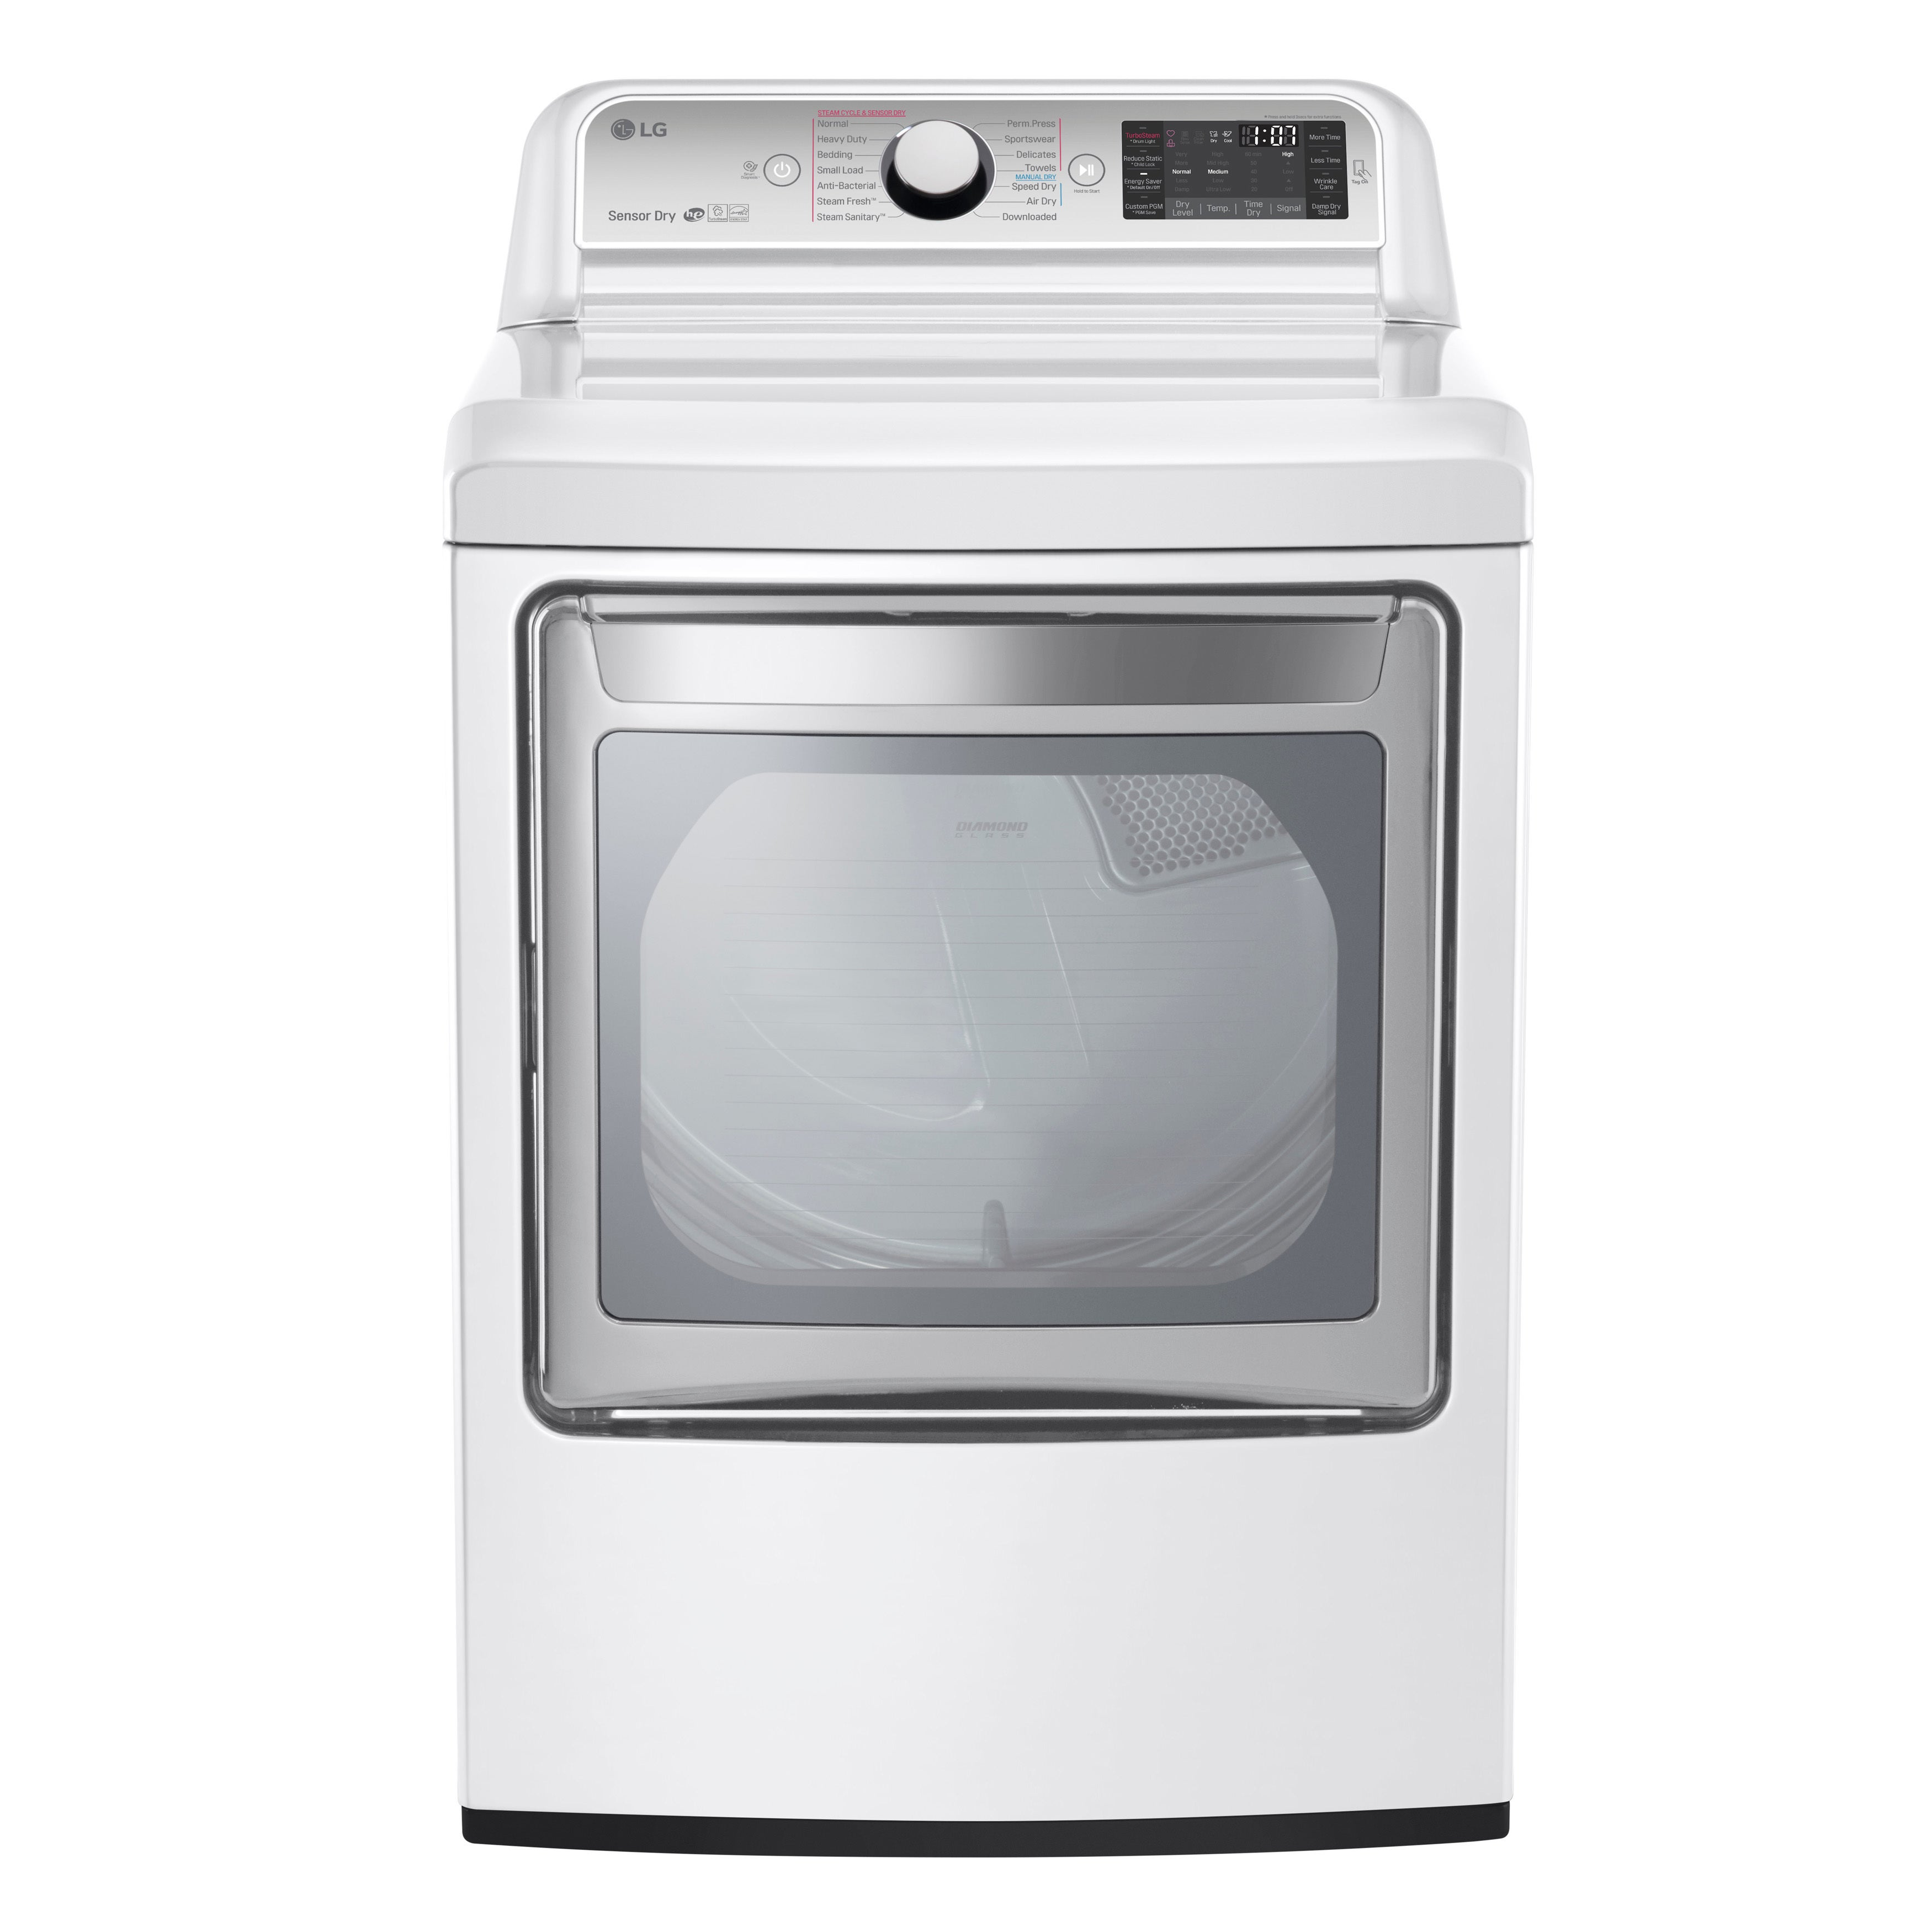 LG DLGX7601WE White Stainless Steel 27-inch 7.3-cubic-foo...